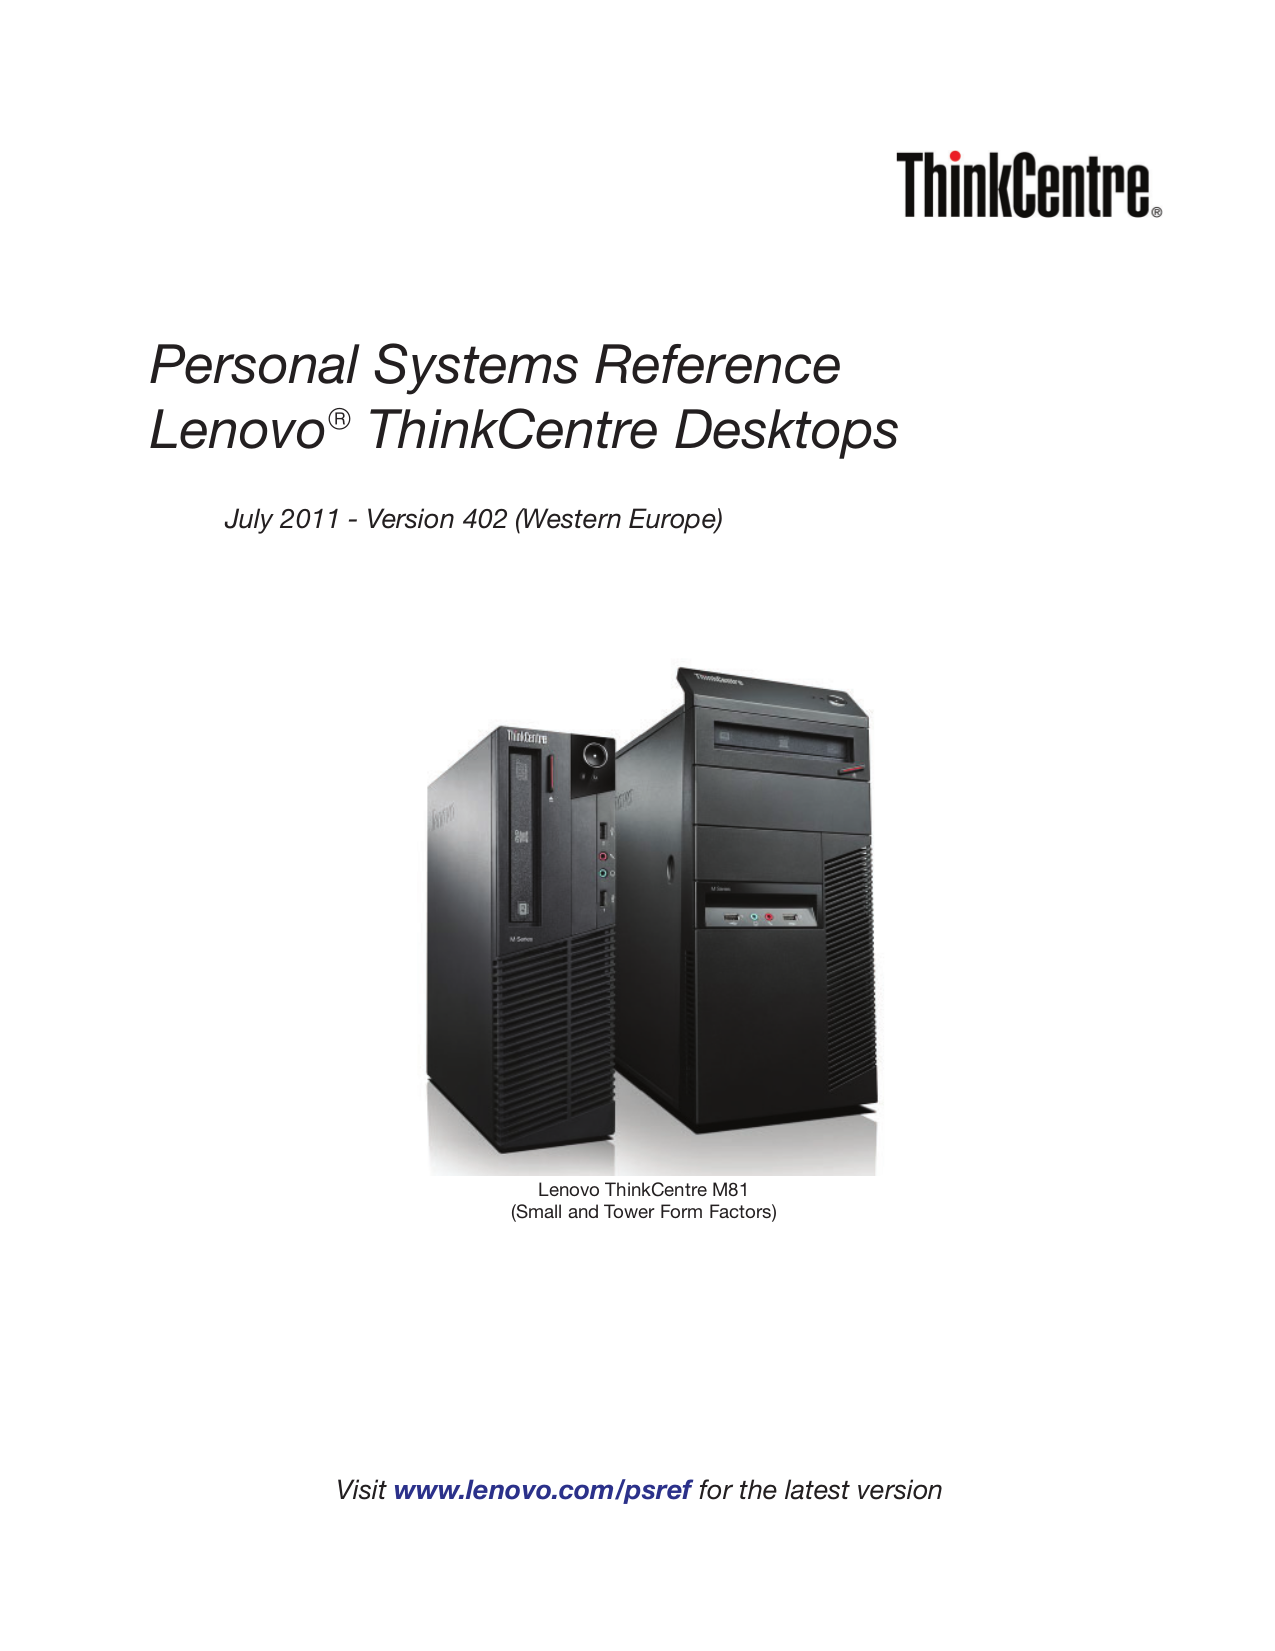 pdf for Lenovo Desktop ThinkCentre M81 0385 manual